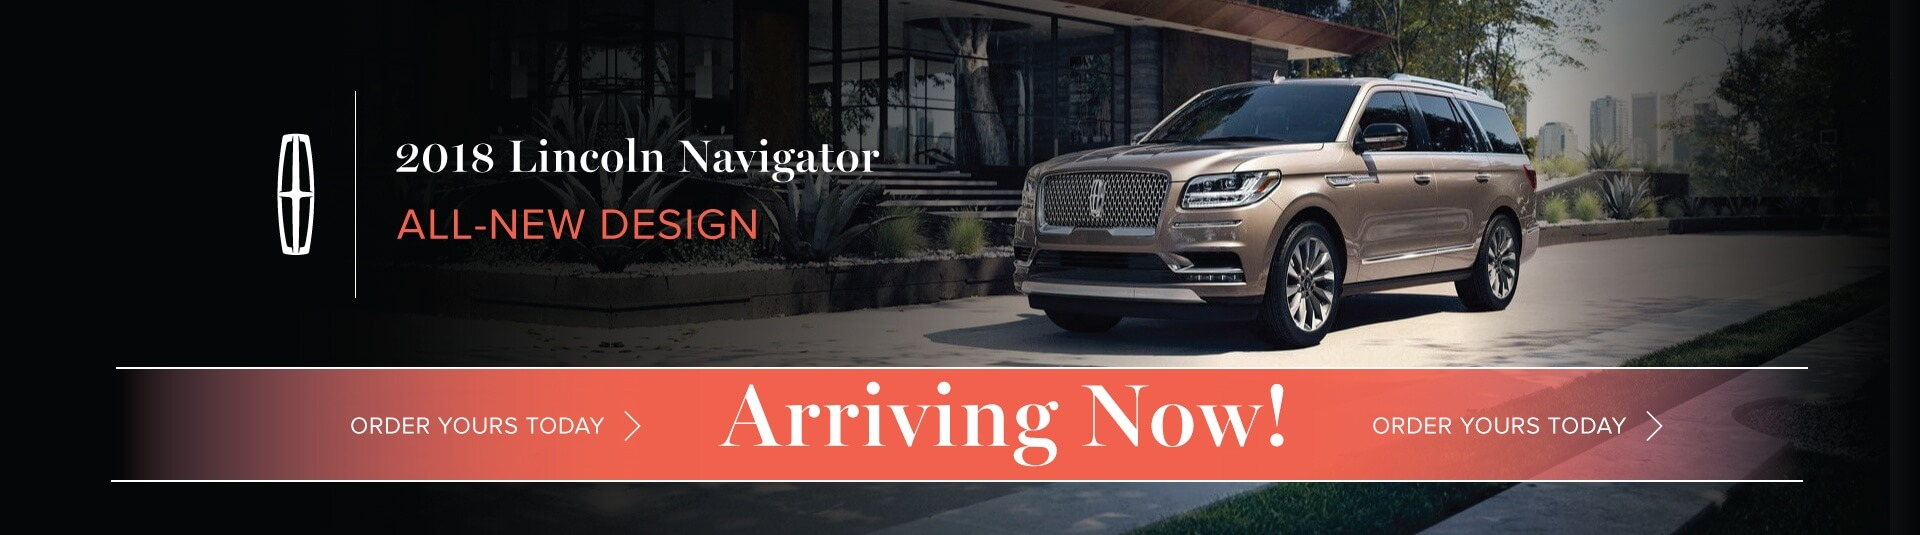 All New 2018 Lincoln Navigator